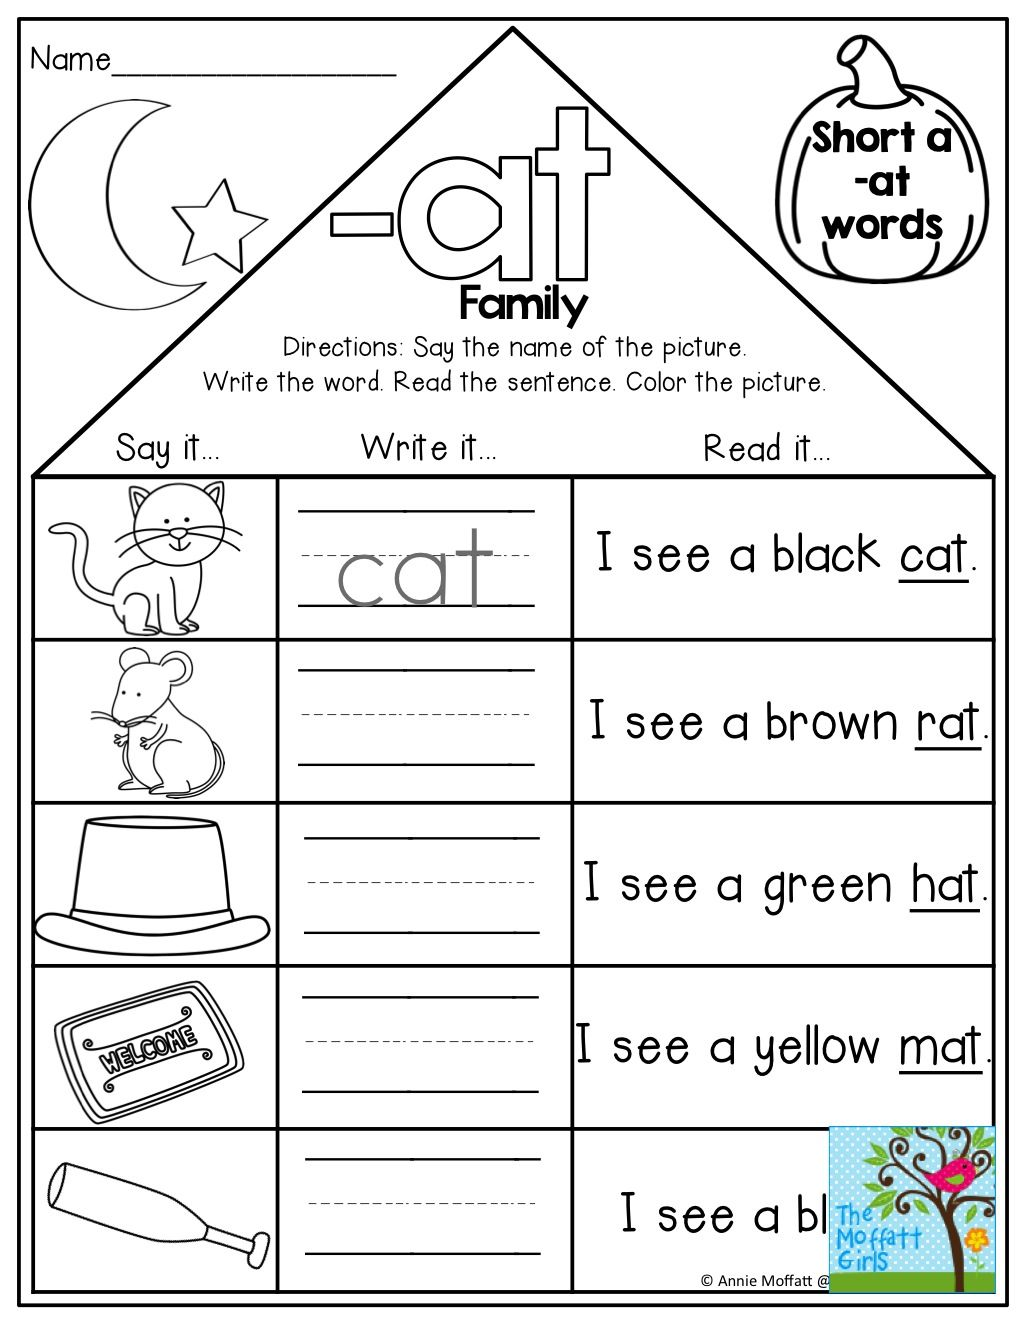 Worksheet Am Word Family Worksheets Worksheet Fun